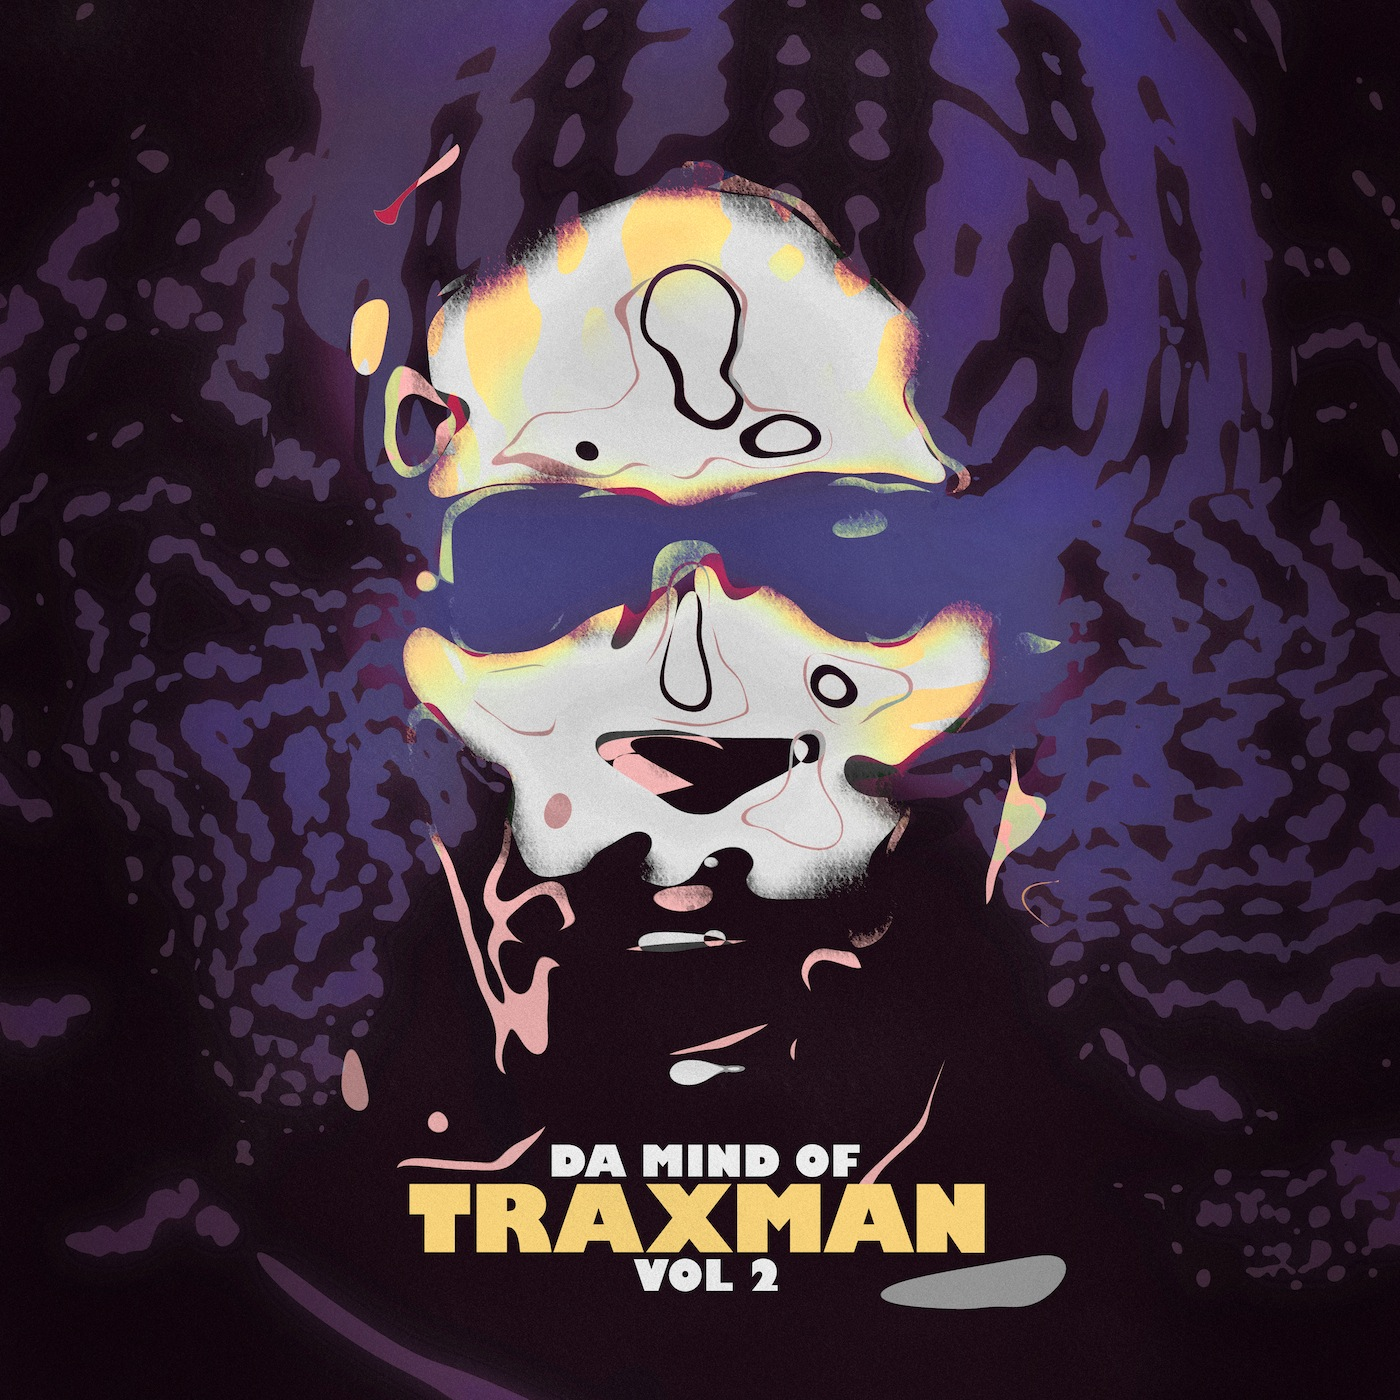 Traxman Da Mind of Traxman Vol. 2